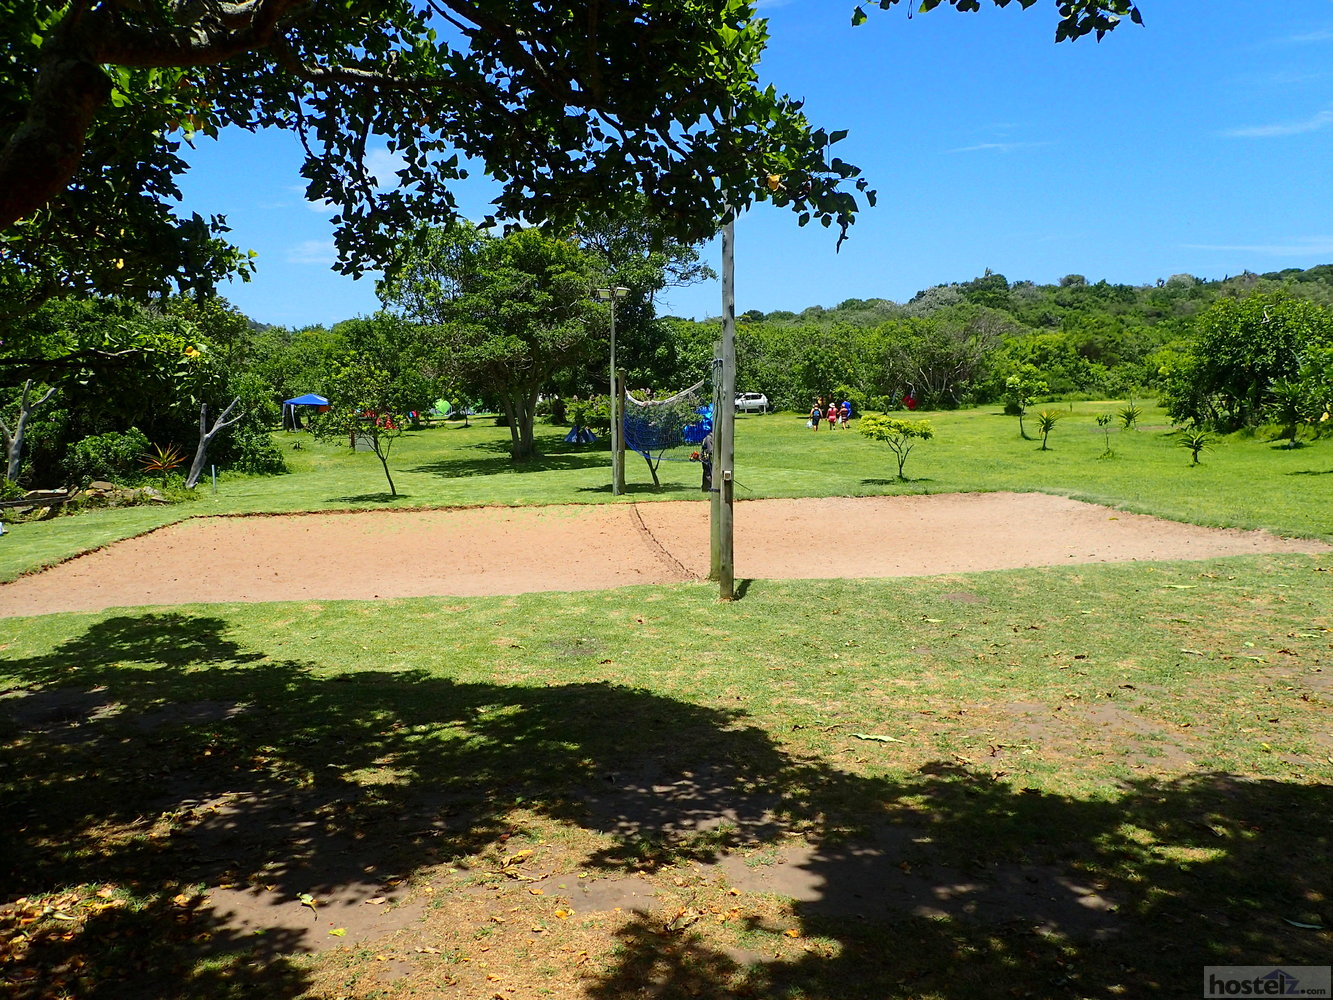 volleyball court with campground in background